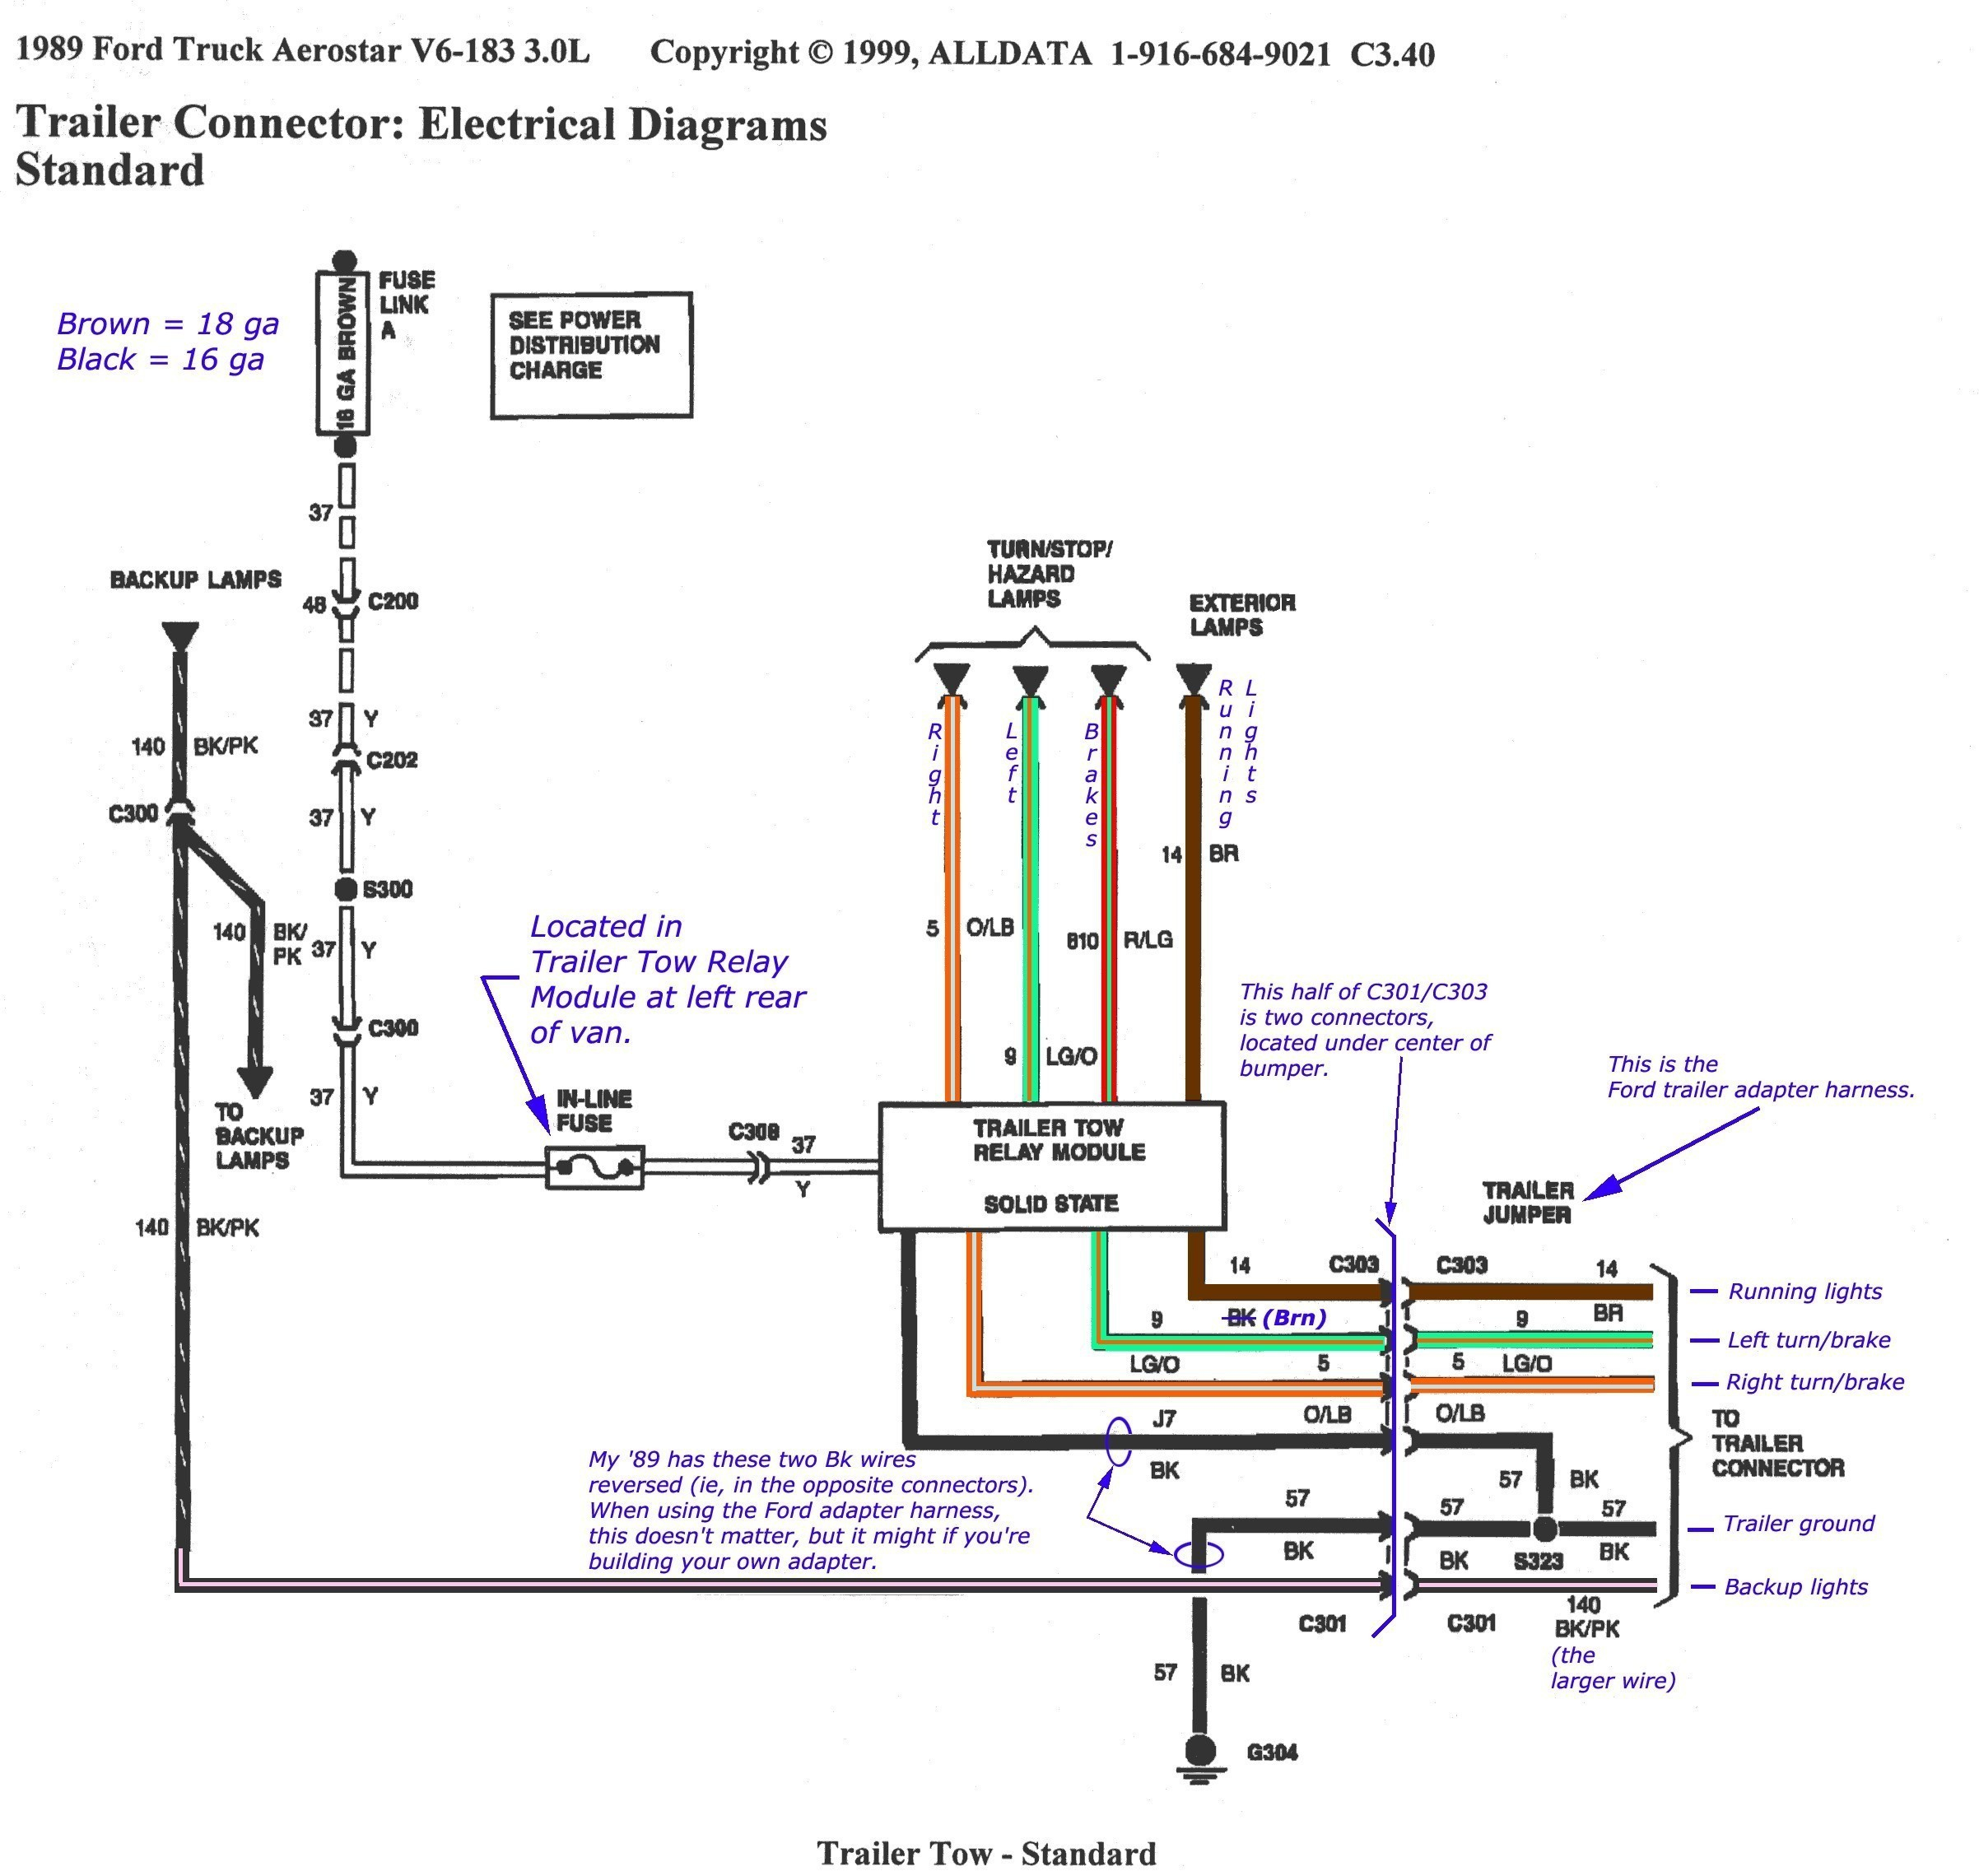 Breakaway Kit Wiring Diagram | Wiring Diagram - Ford Trailer Wiring Harness Diagram